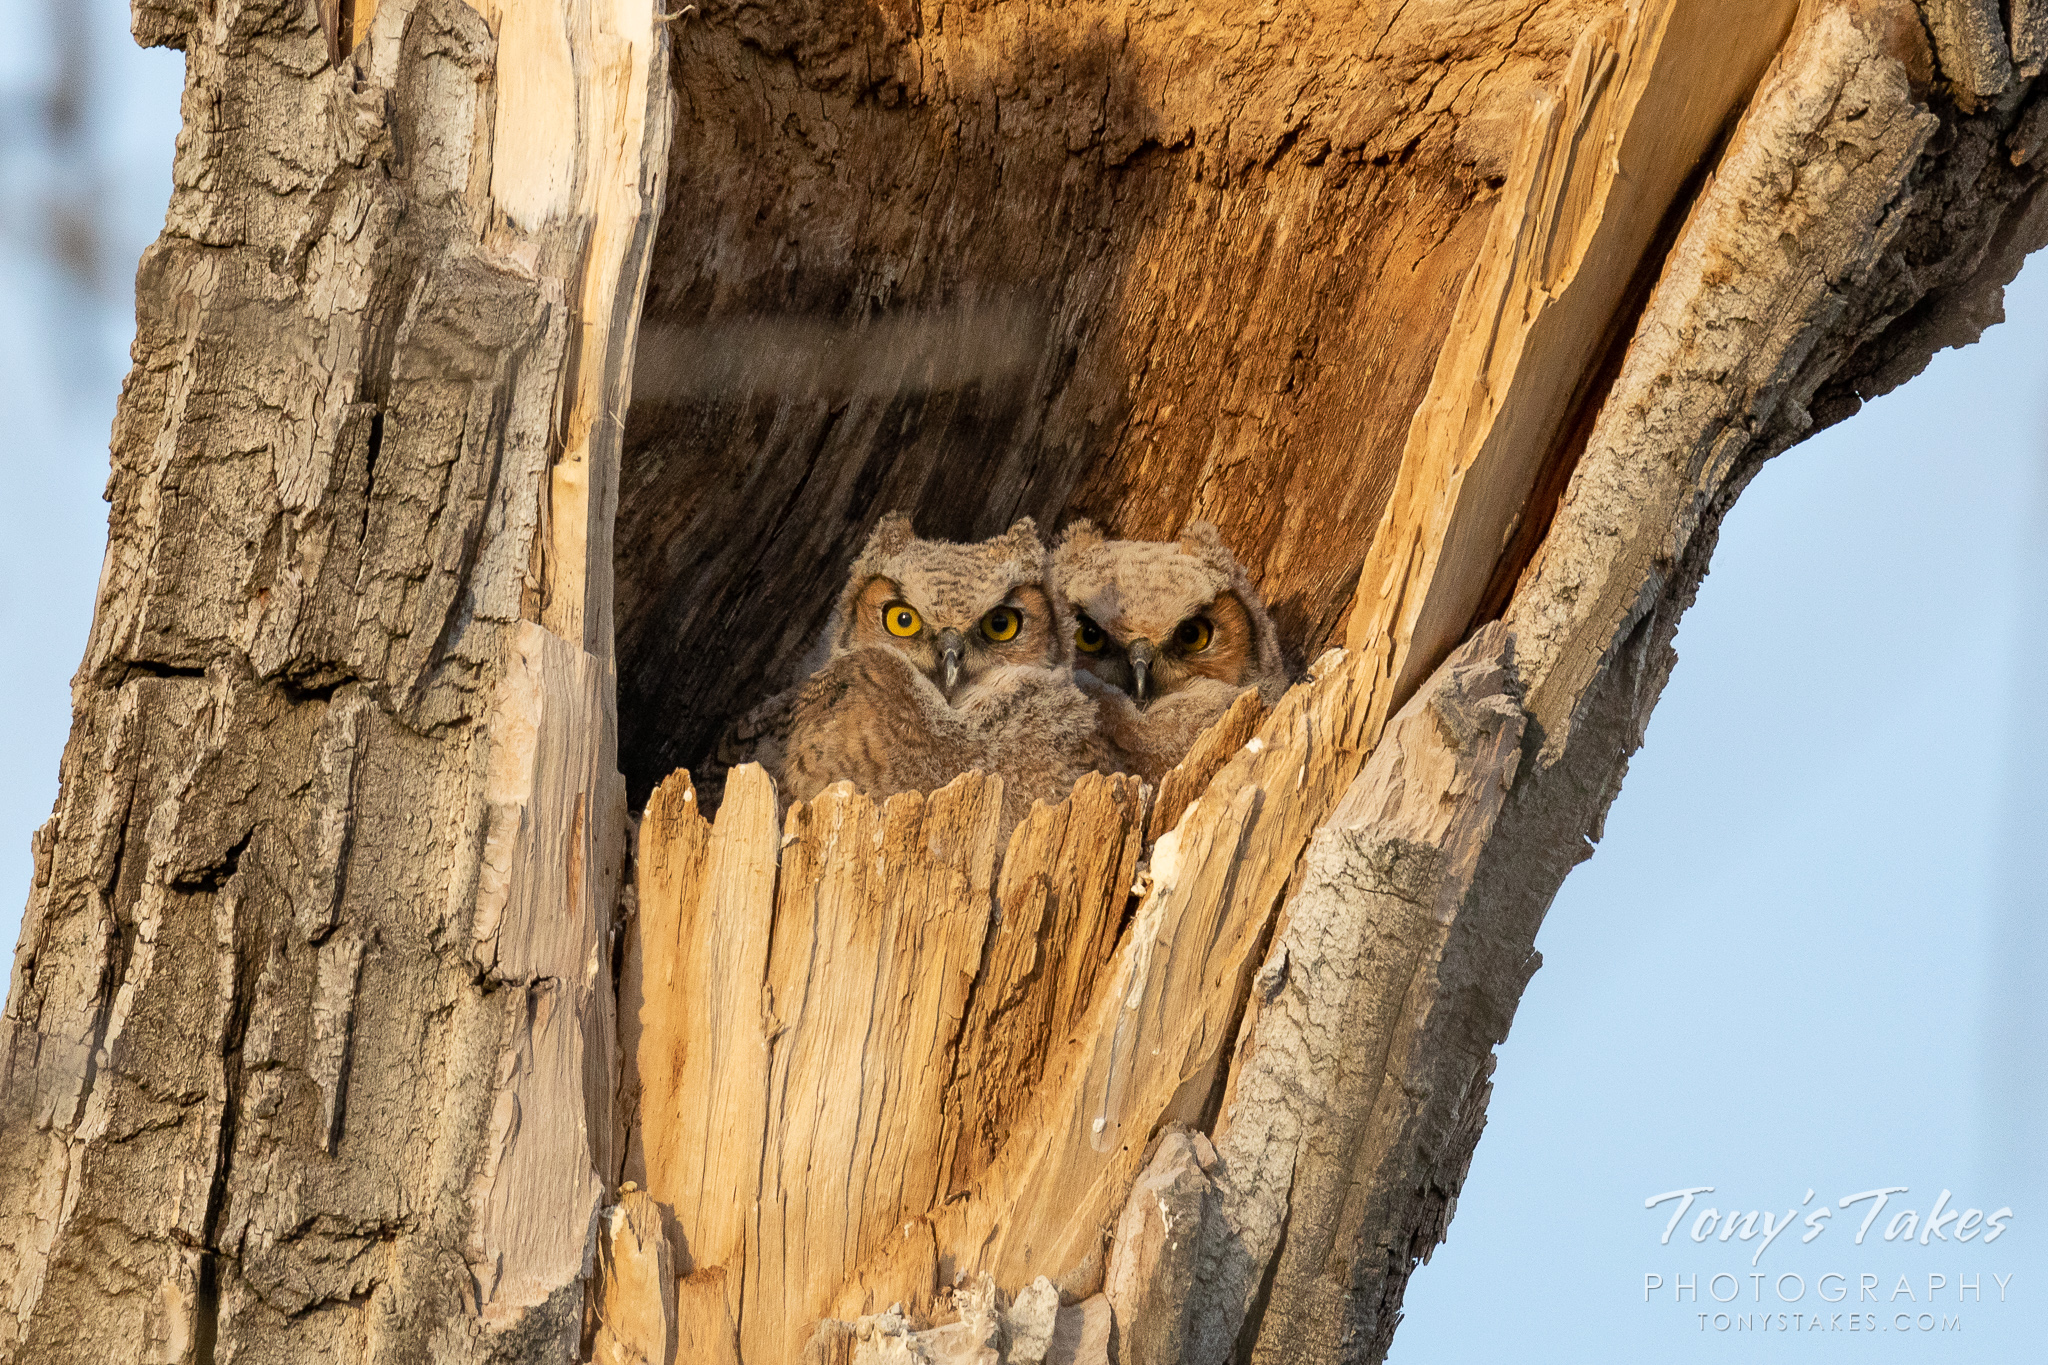 Great horned owl owlets keep watch from their home in a tree in Adams County, Colorado. (© Tony's Takes)